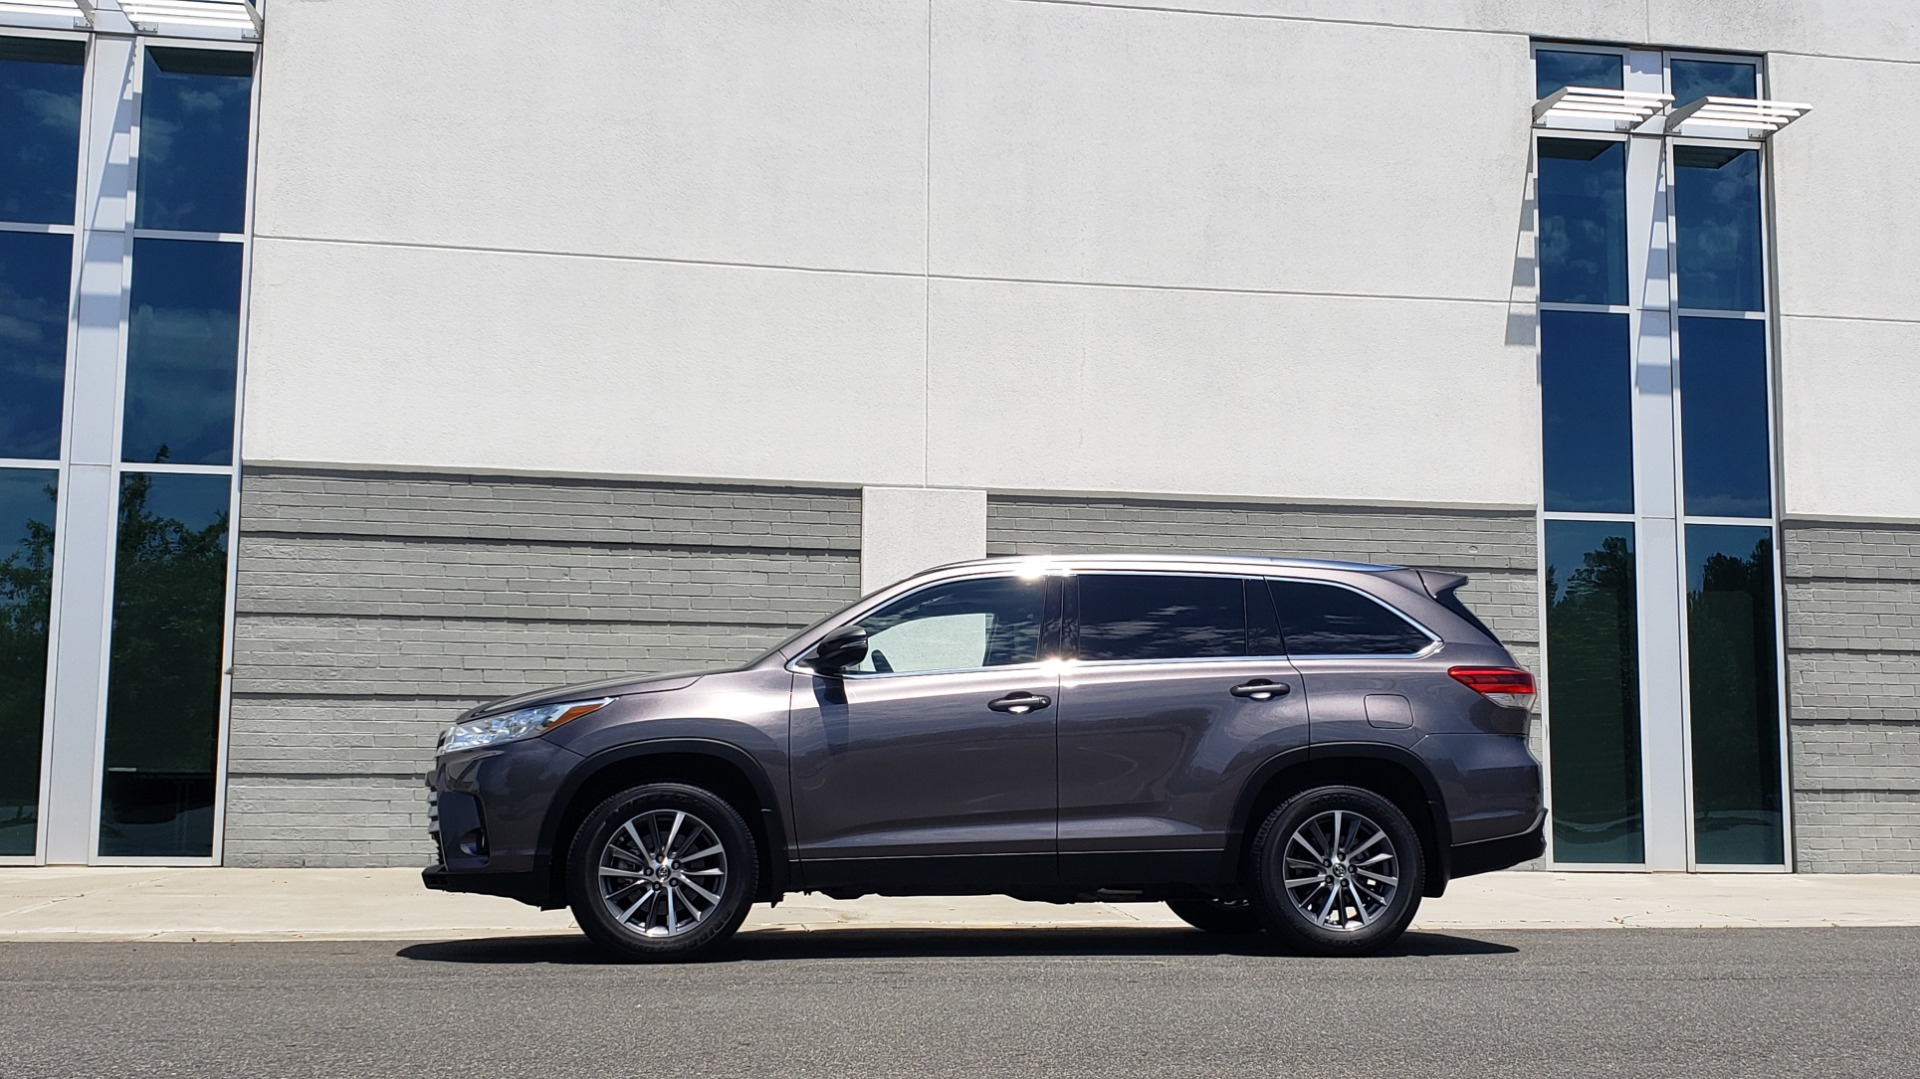 Used 2019 Toyota HIGHLANDER XLE / 3.5L V6 / AWD / LEATHER / 8-SPD AUTO / 1-OWNER for sale $37,500 at Formula Imports in Charlotte NC 28227 5